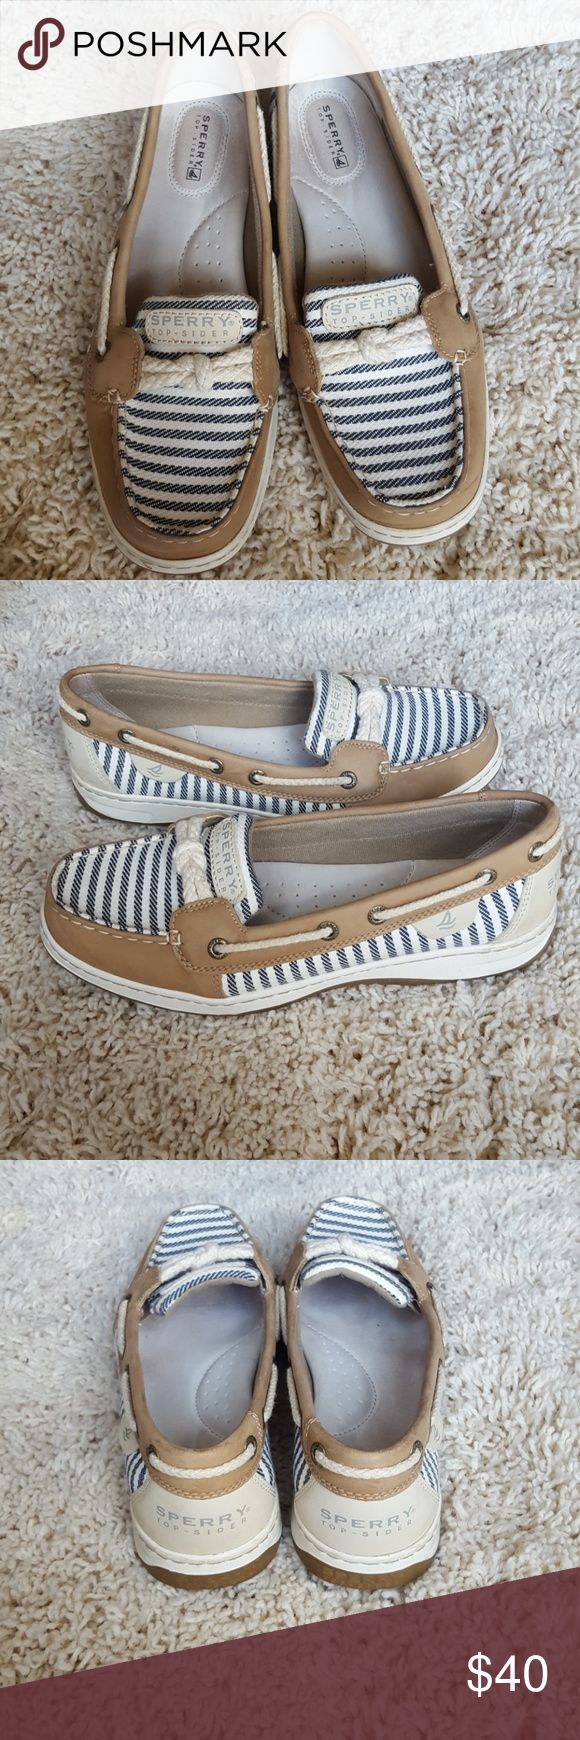 Sperry Top Sider Shoes Size 8 Super cute tan shoes with cream and navy stripes detail. EUC Sperry Top-Sider Shoes Flats & Loafers